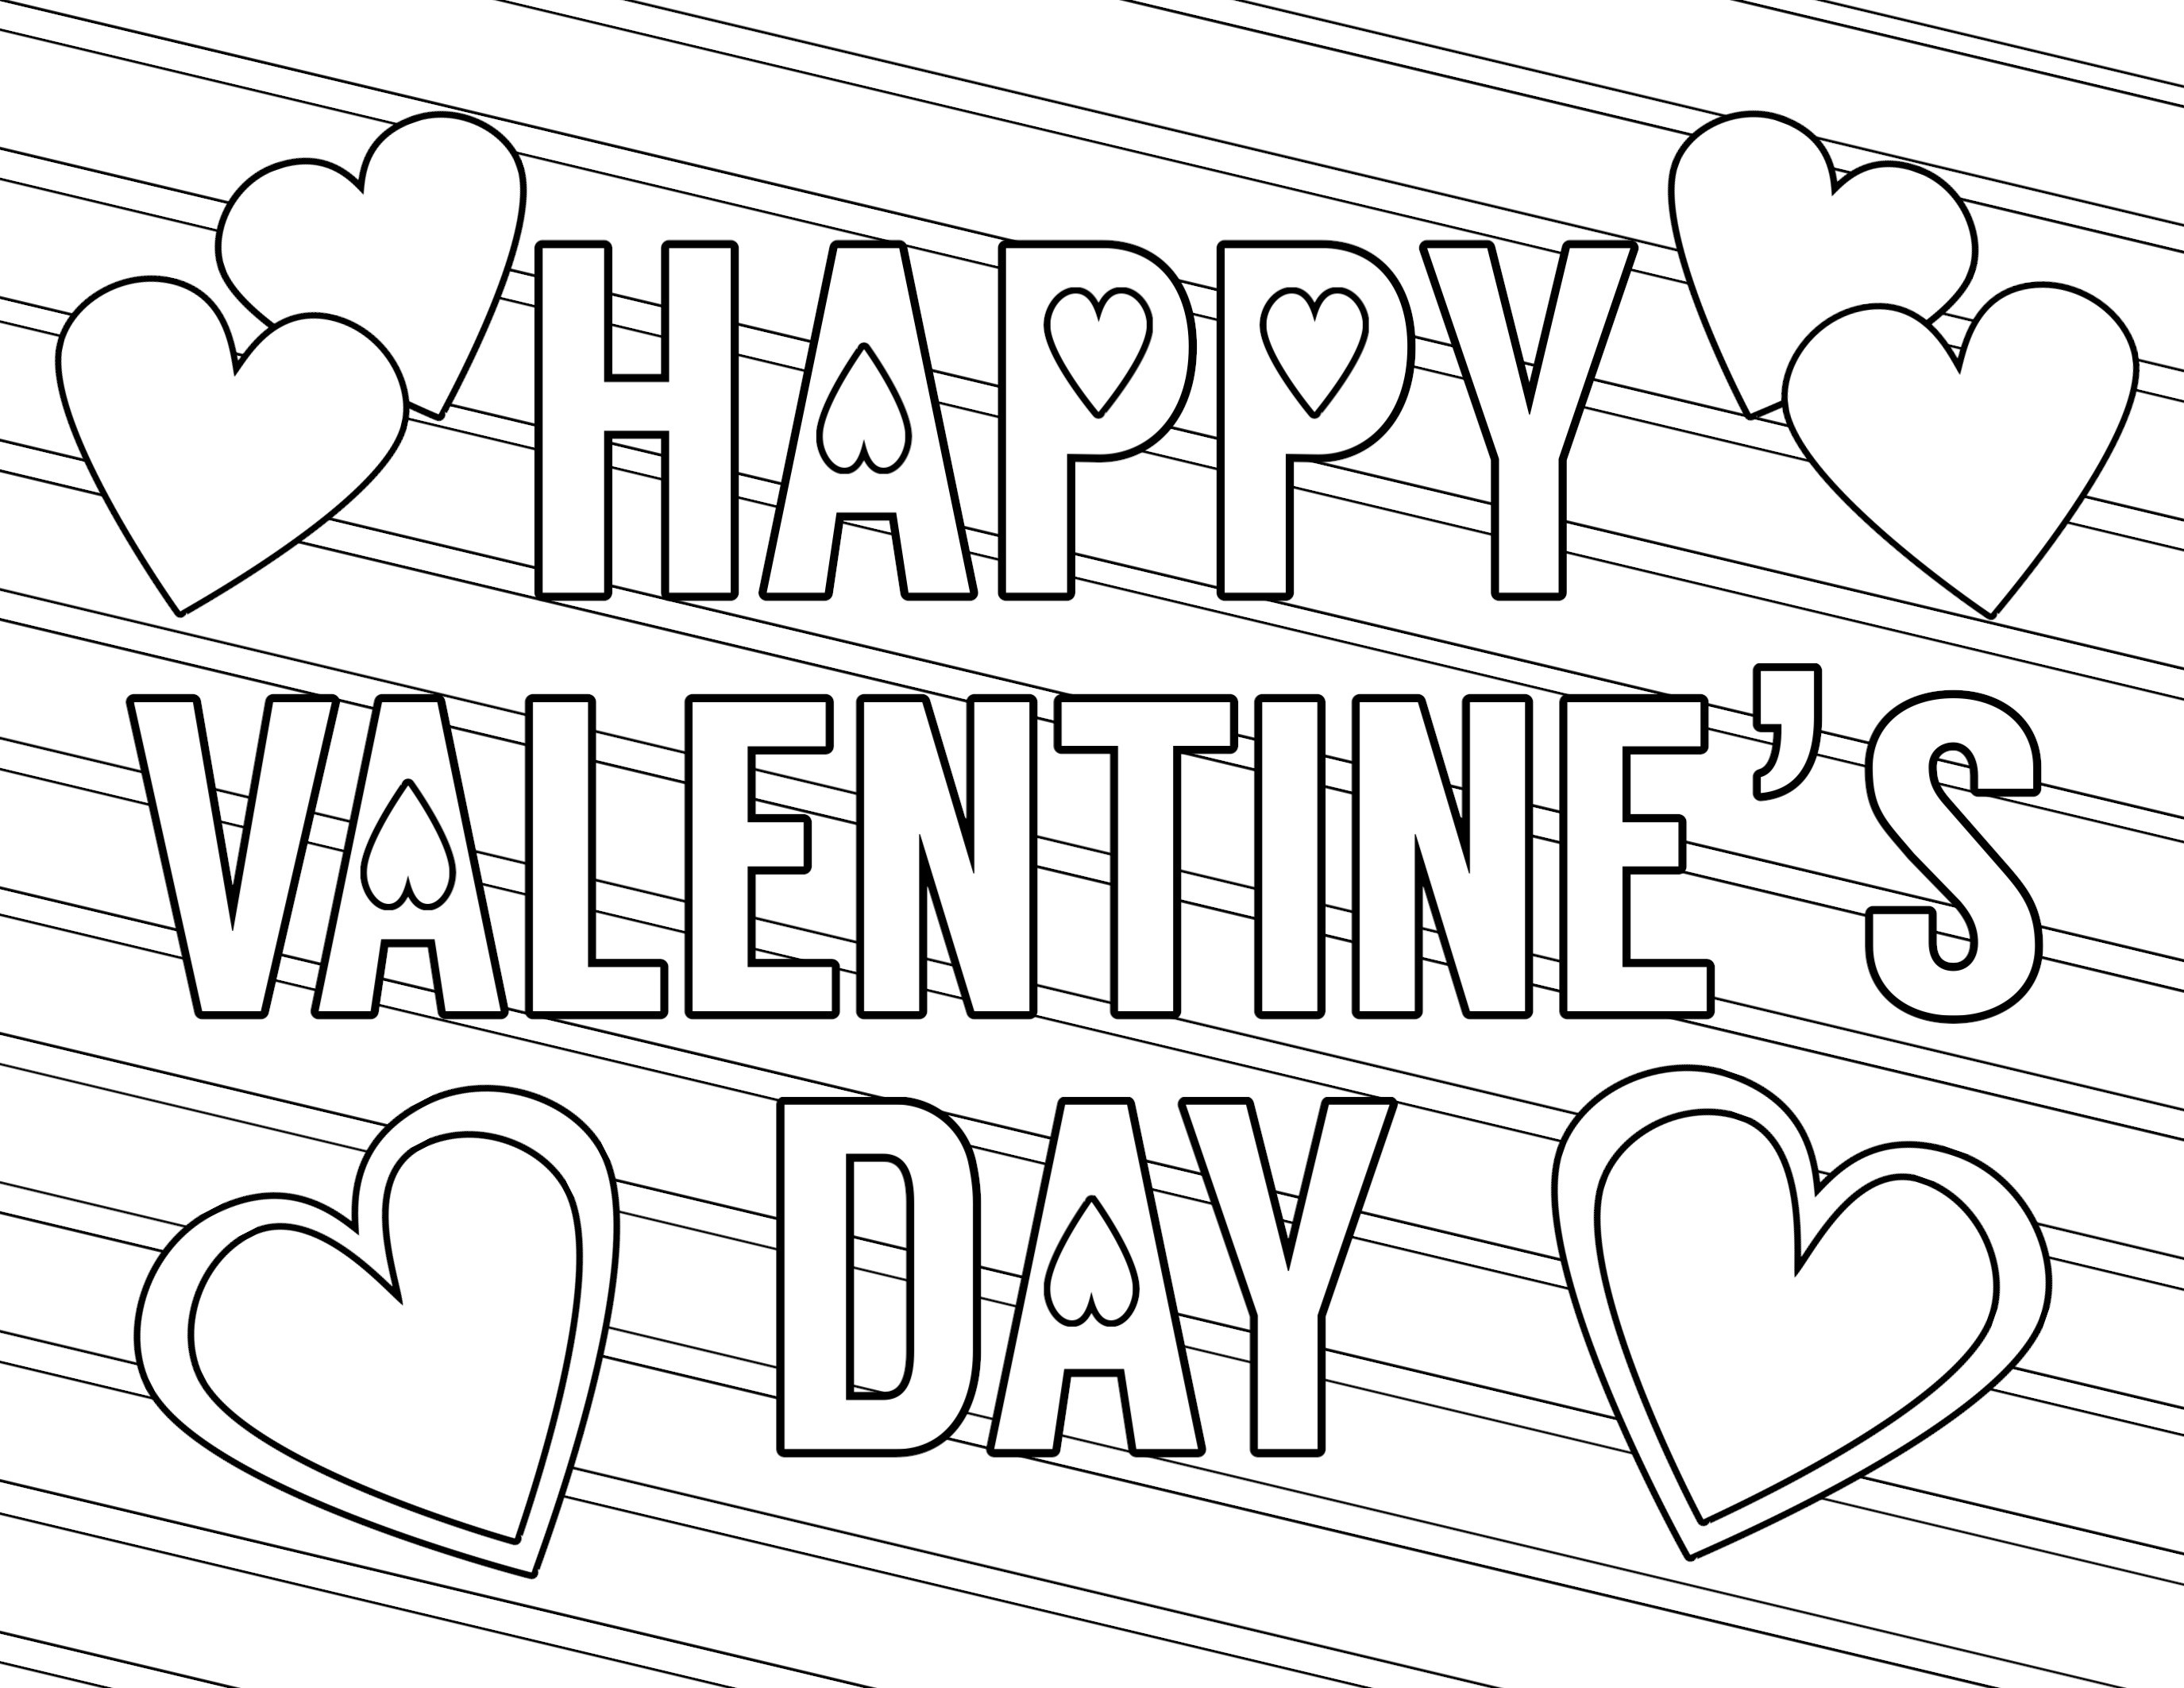 Coloring Ideas : Stunning Free Valentines Day Coloring Pages Page - Free Printable Valentines Day Coloring Pages